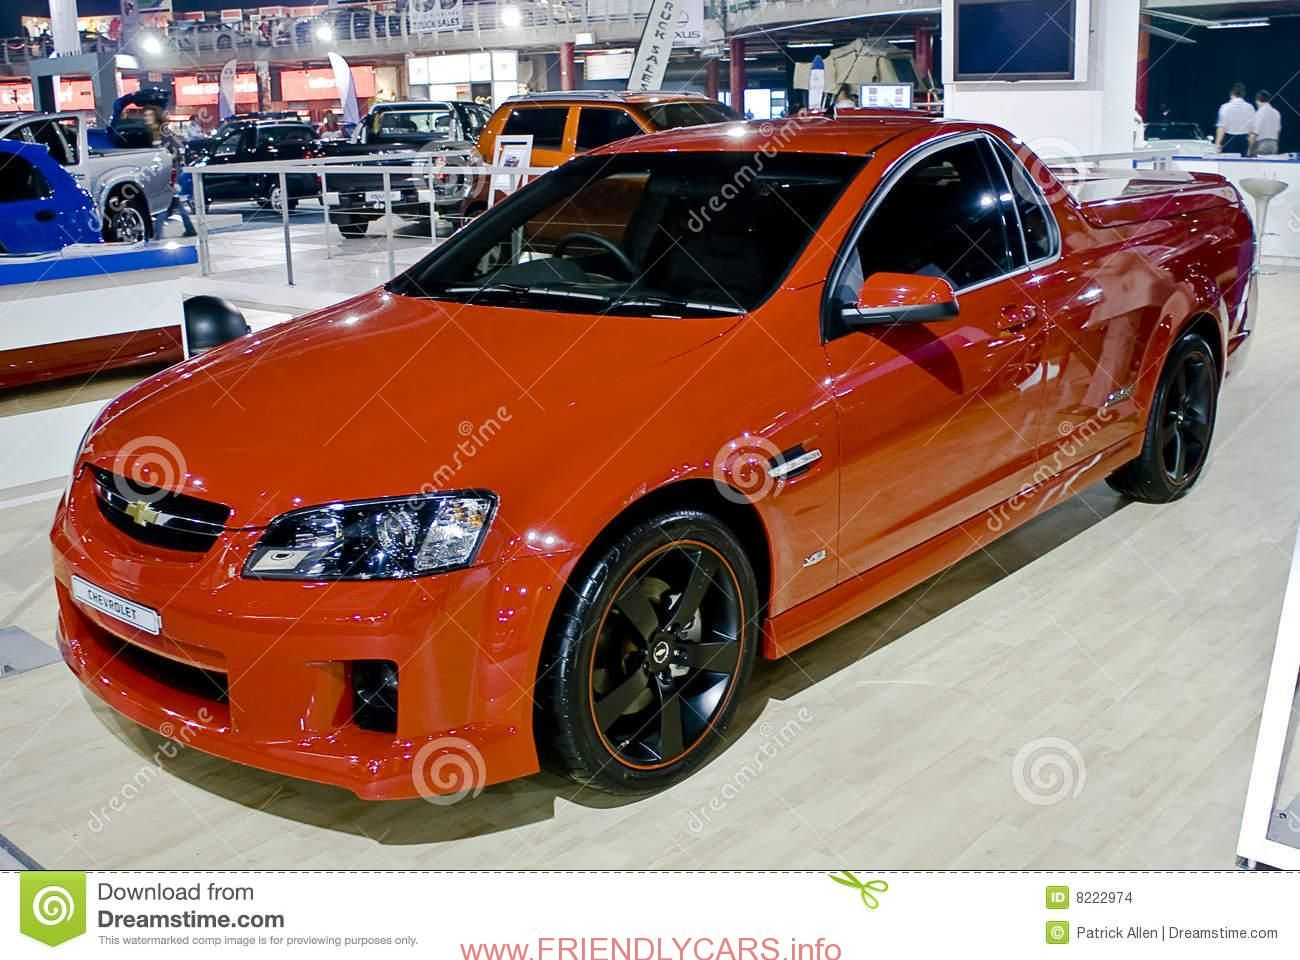 small resolution of cool chevrolet ss lumina sport car images hd chevrolet lumina ss ute mph editorial stock image image 8222974